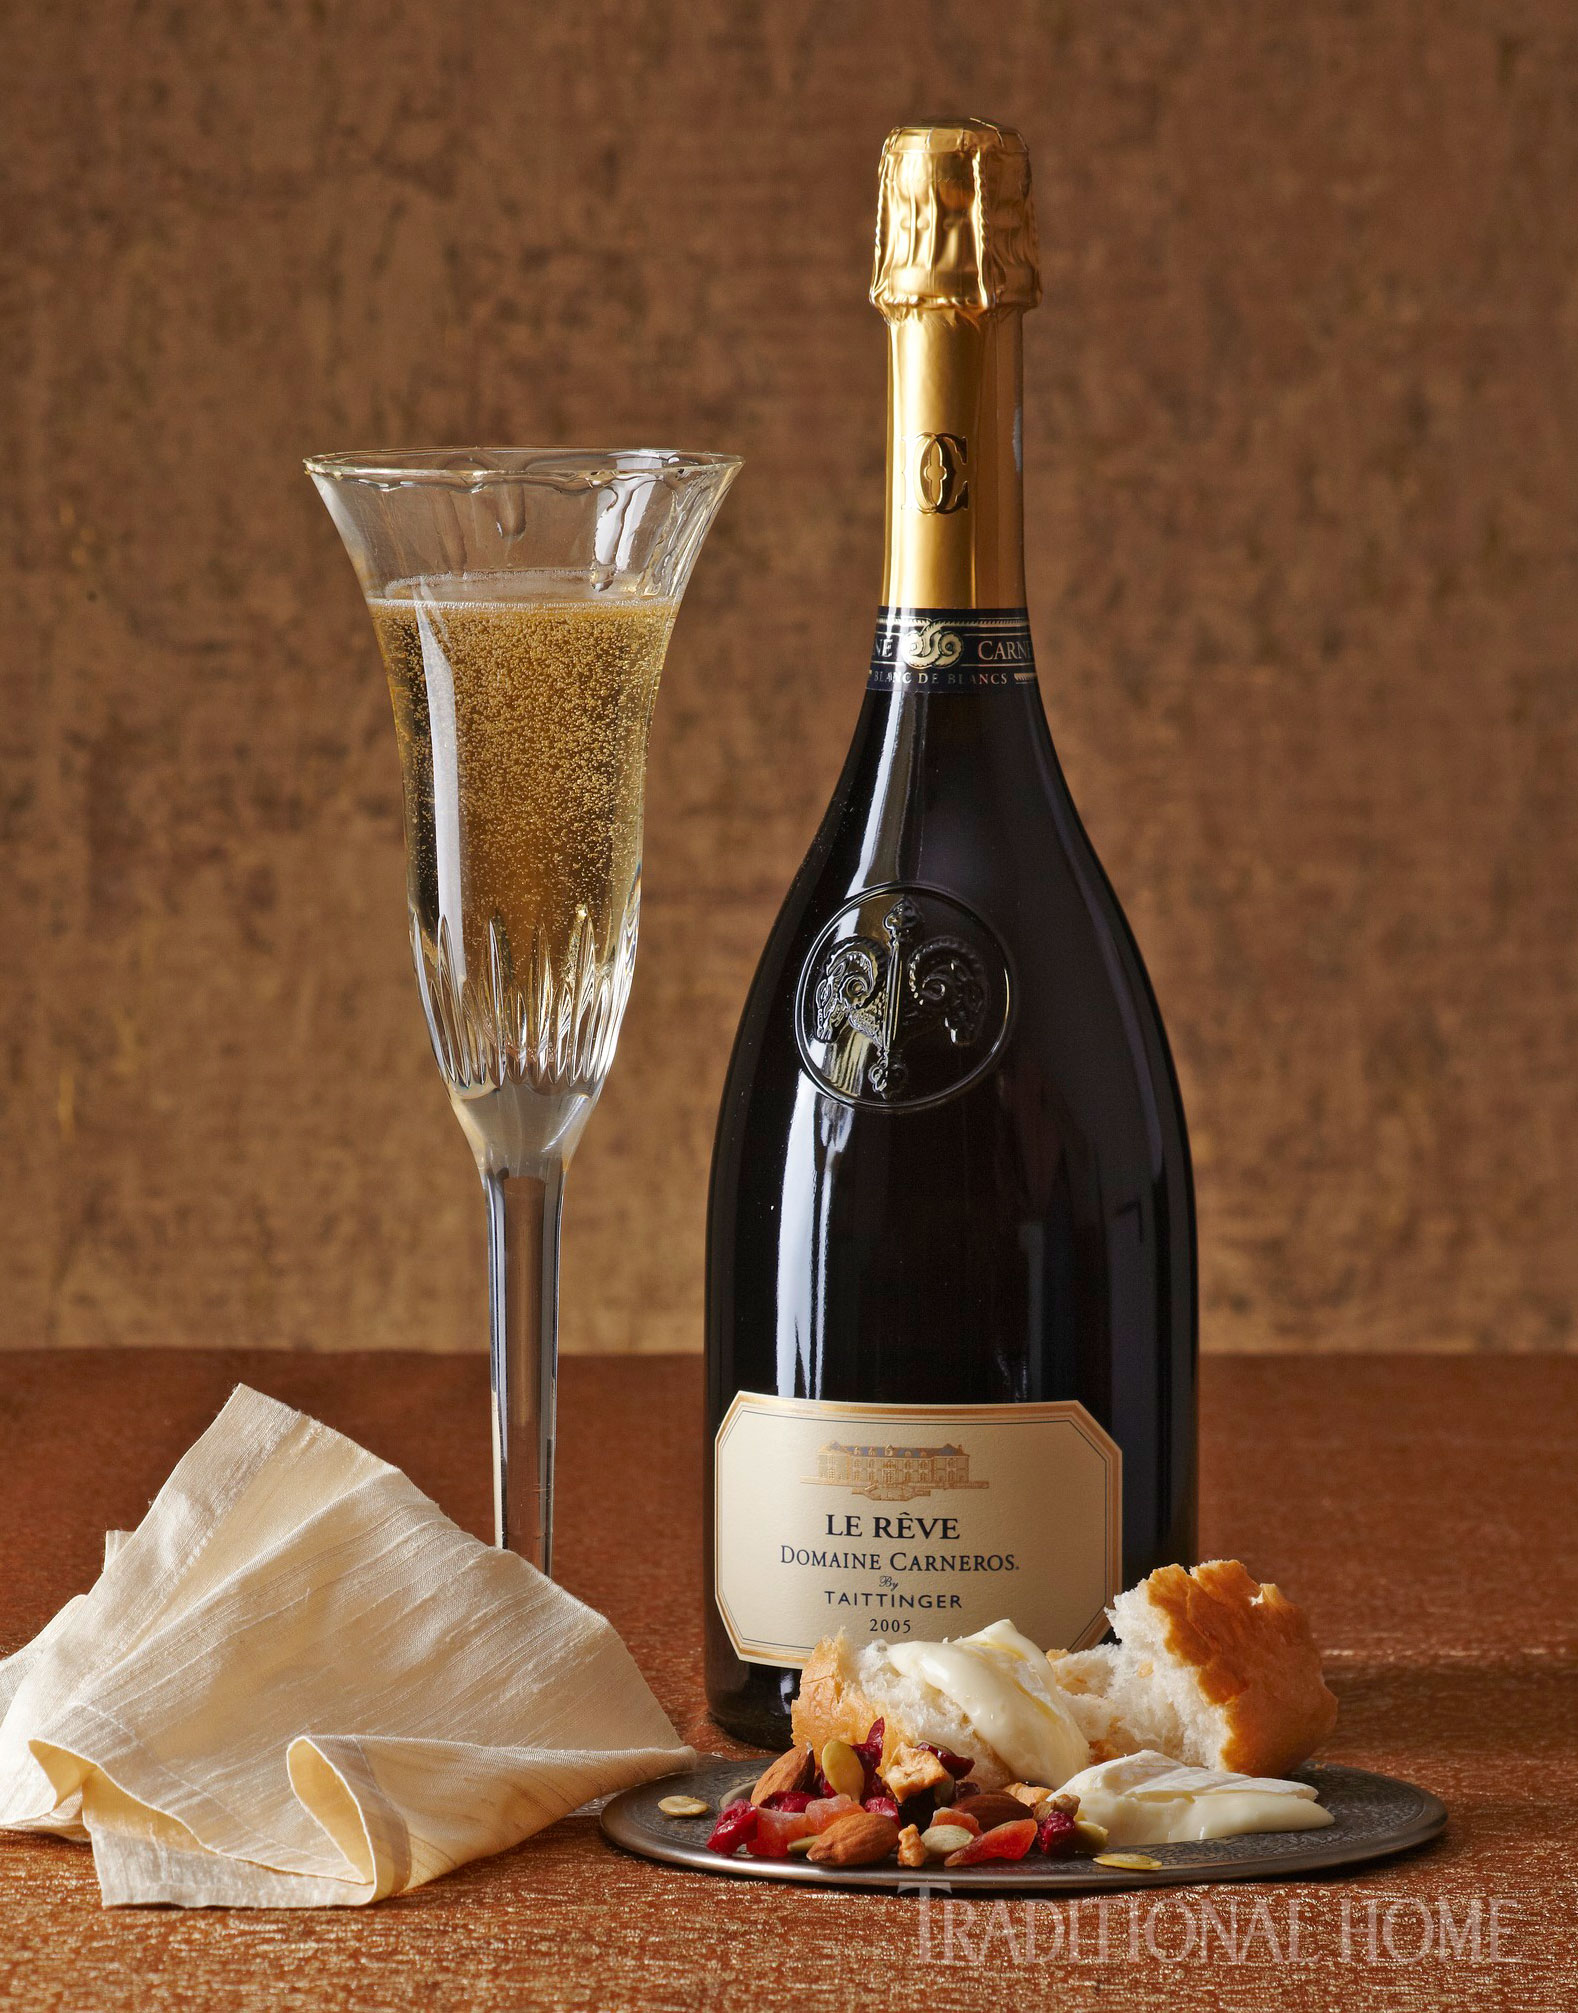 Cooking School: Champagne | Traditional Home